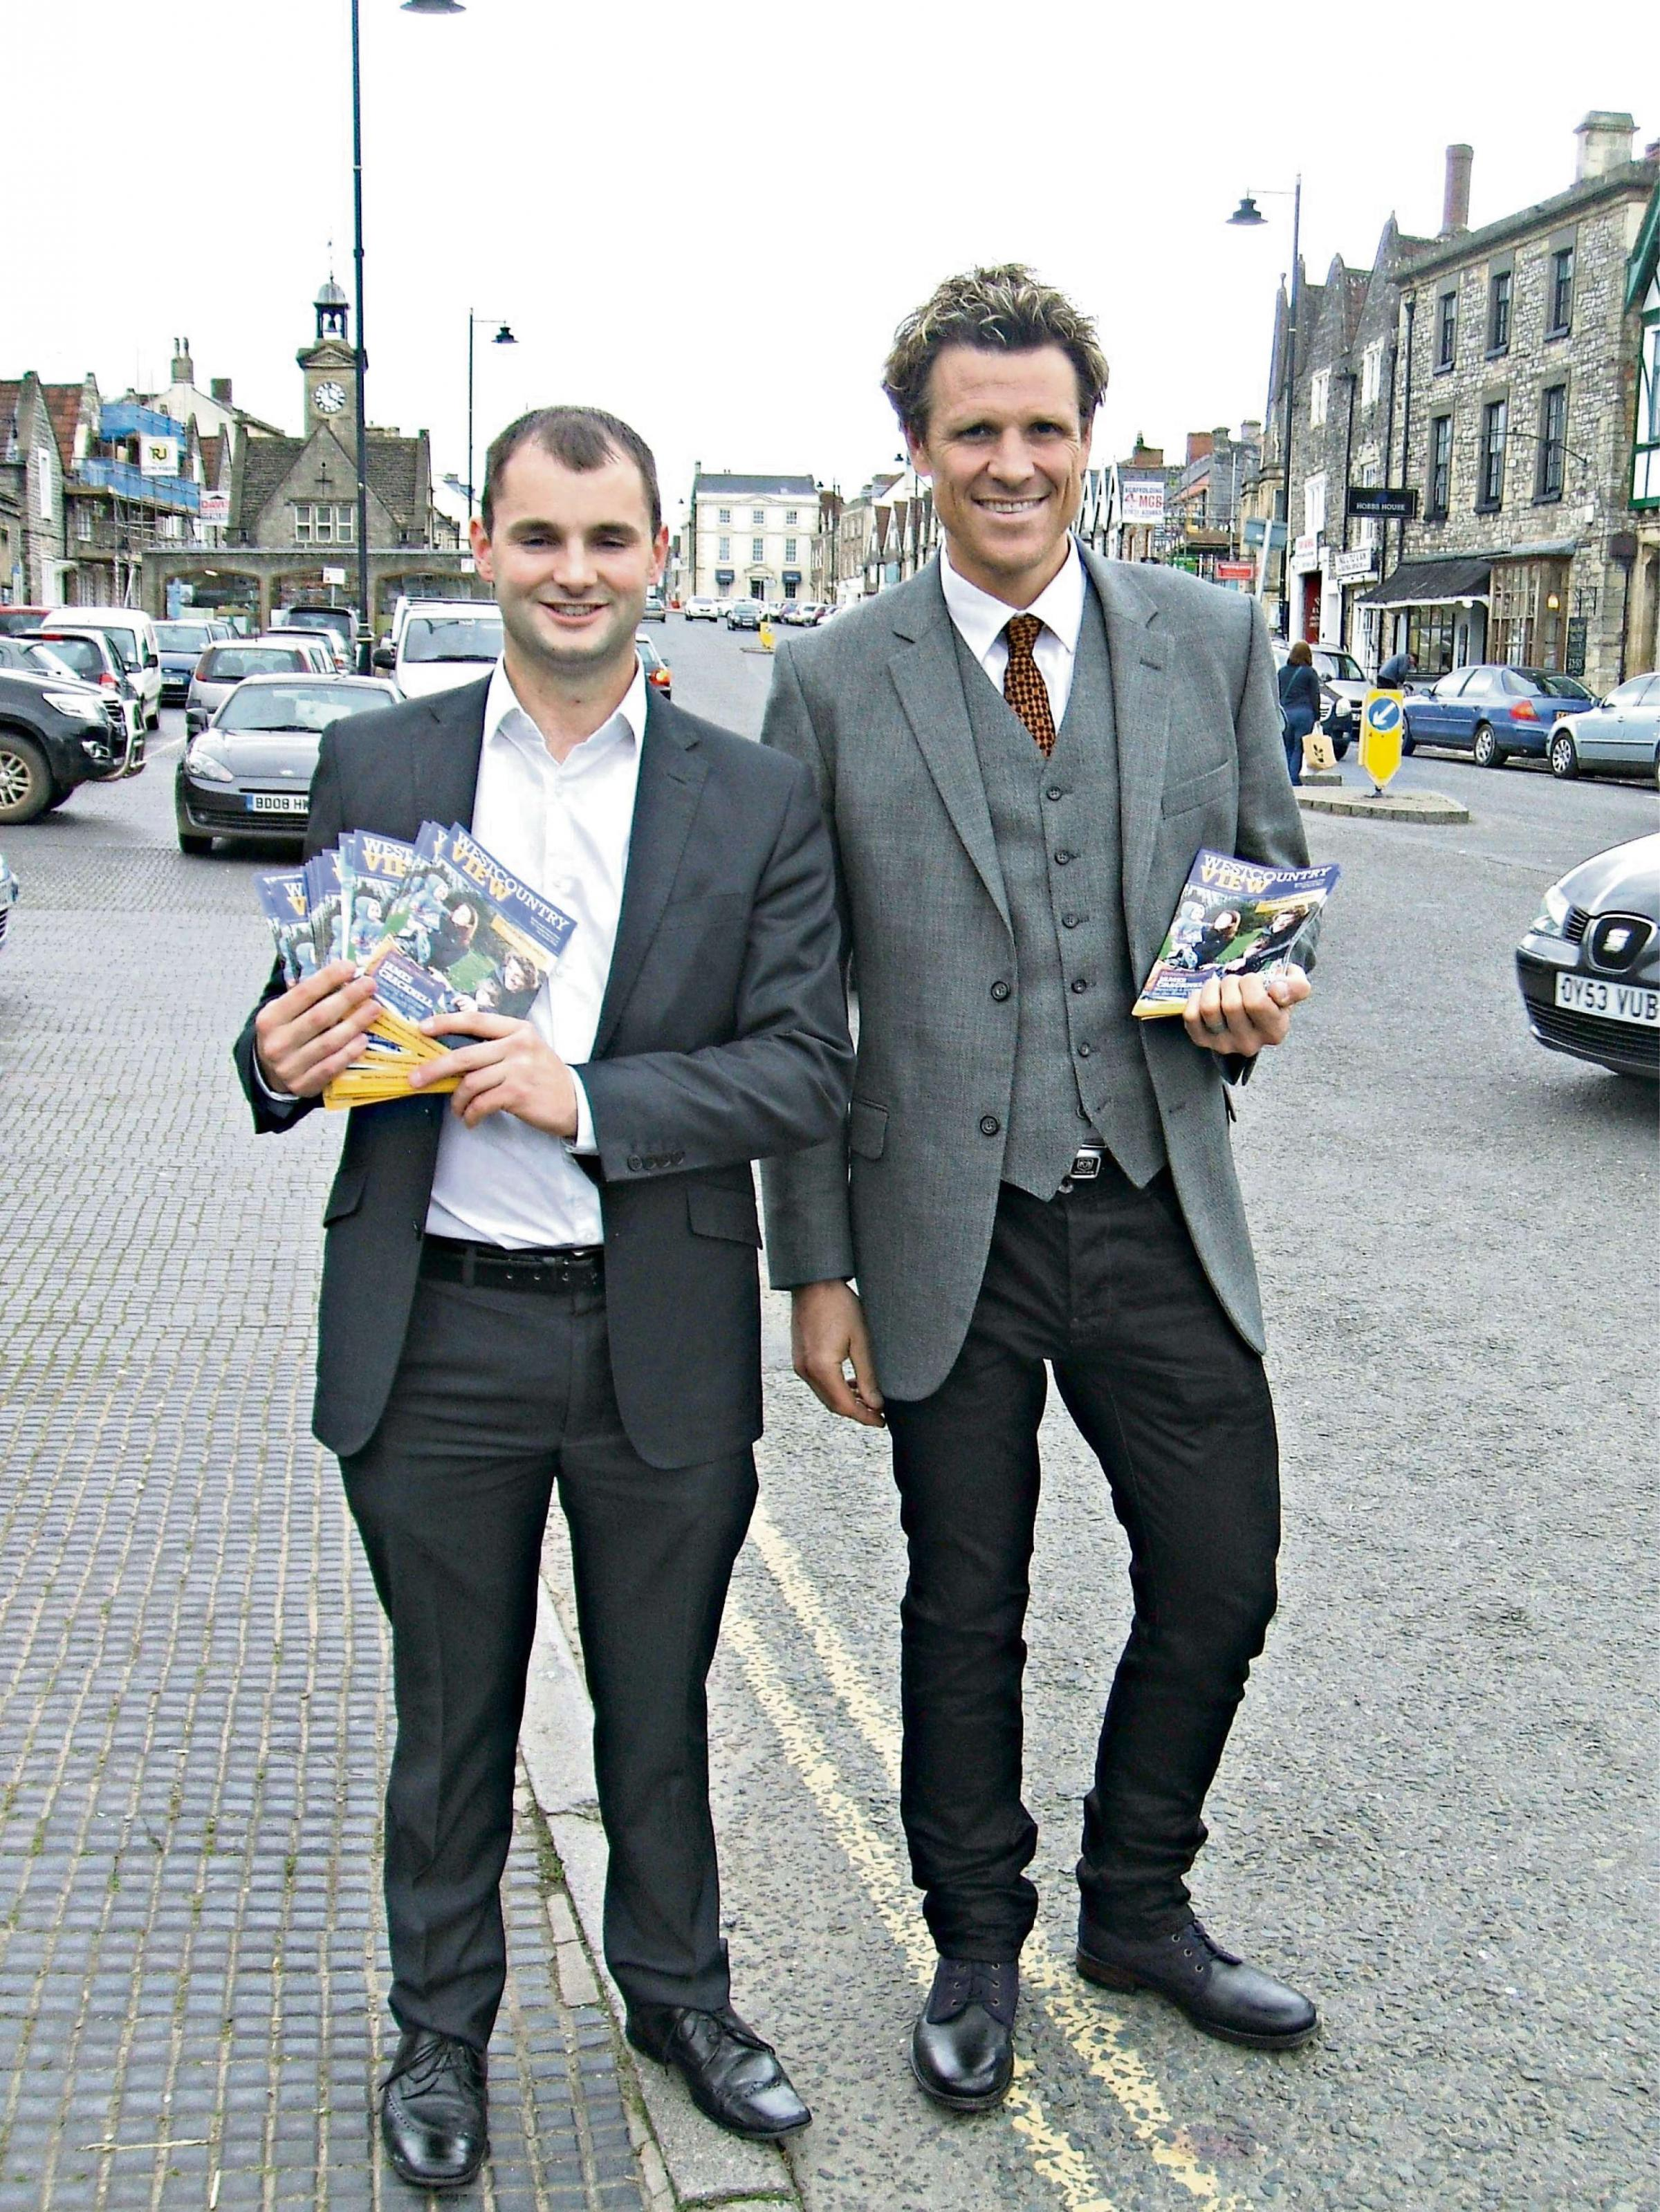 Thornbury and Yate Conservative parliamentary candidate Luke Hall with MEP hopeful and Olympic rower James Cracknell in Chipping Sodbury